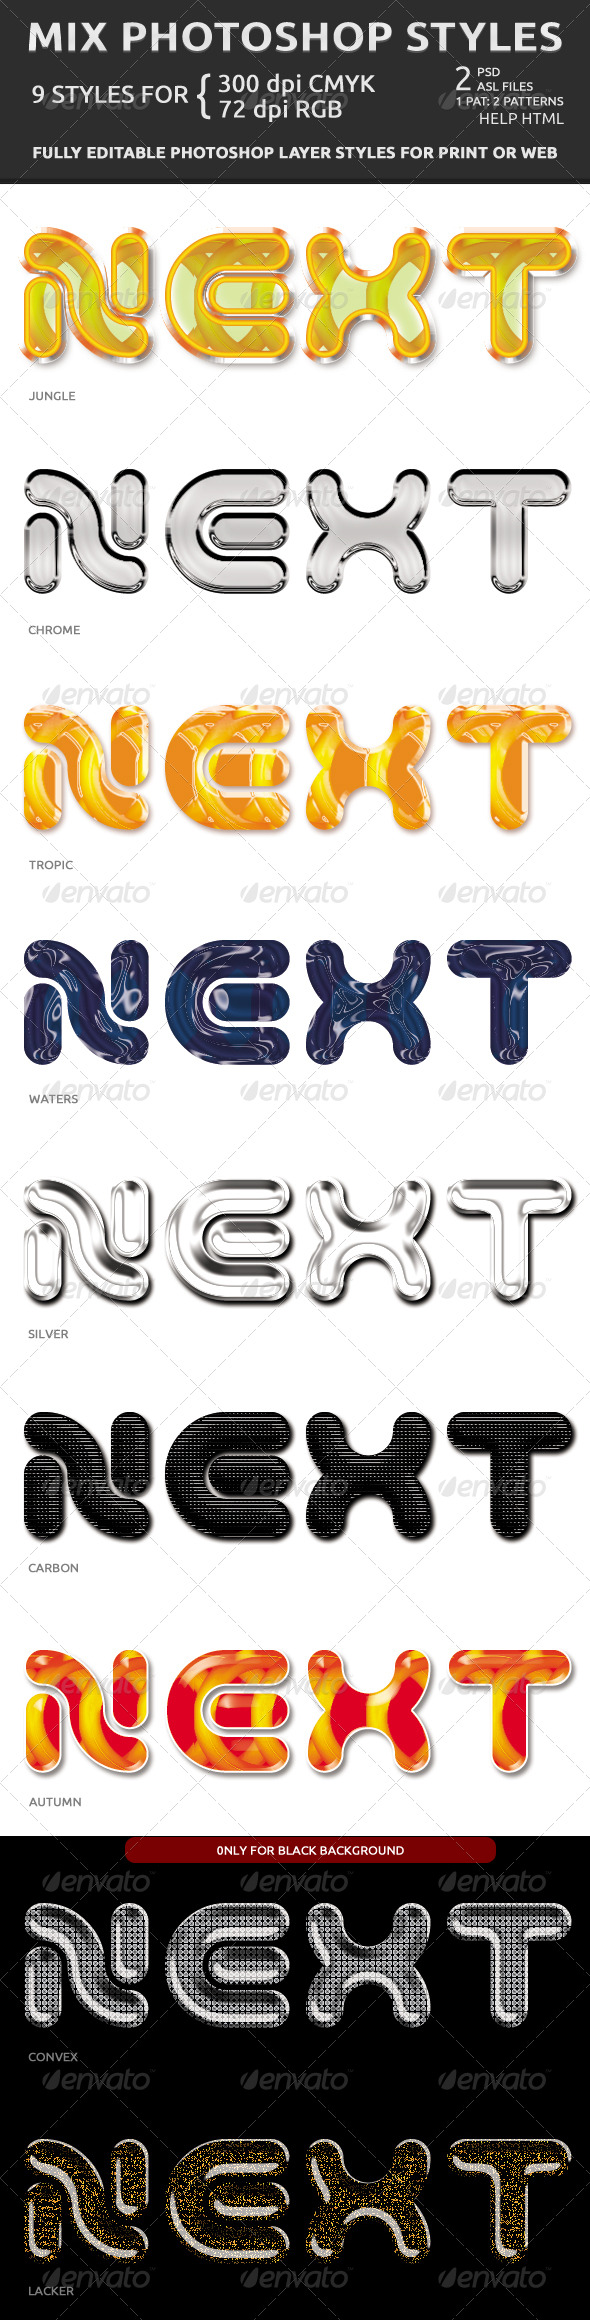 Mix Photoshop Styles - Text Effects Styles